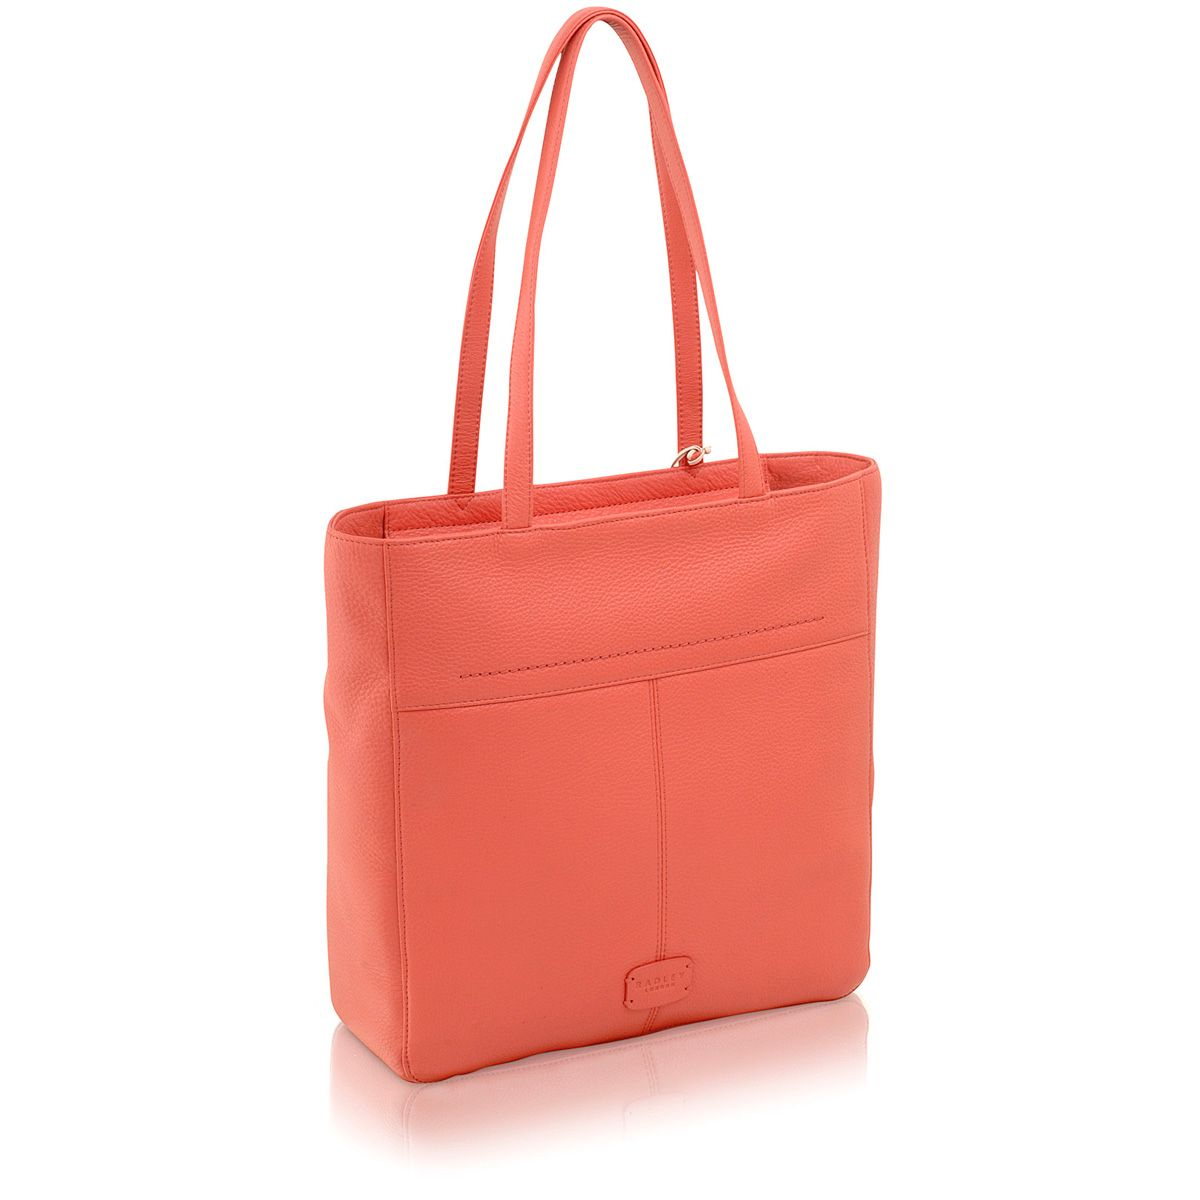 Dayton pink large leather tote bag